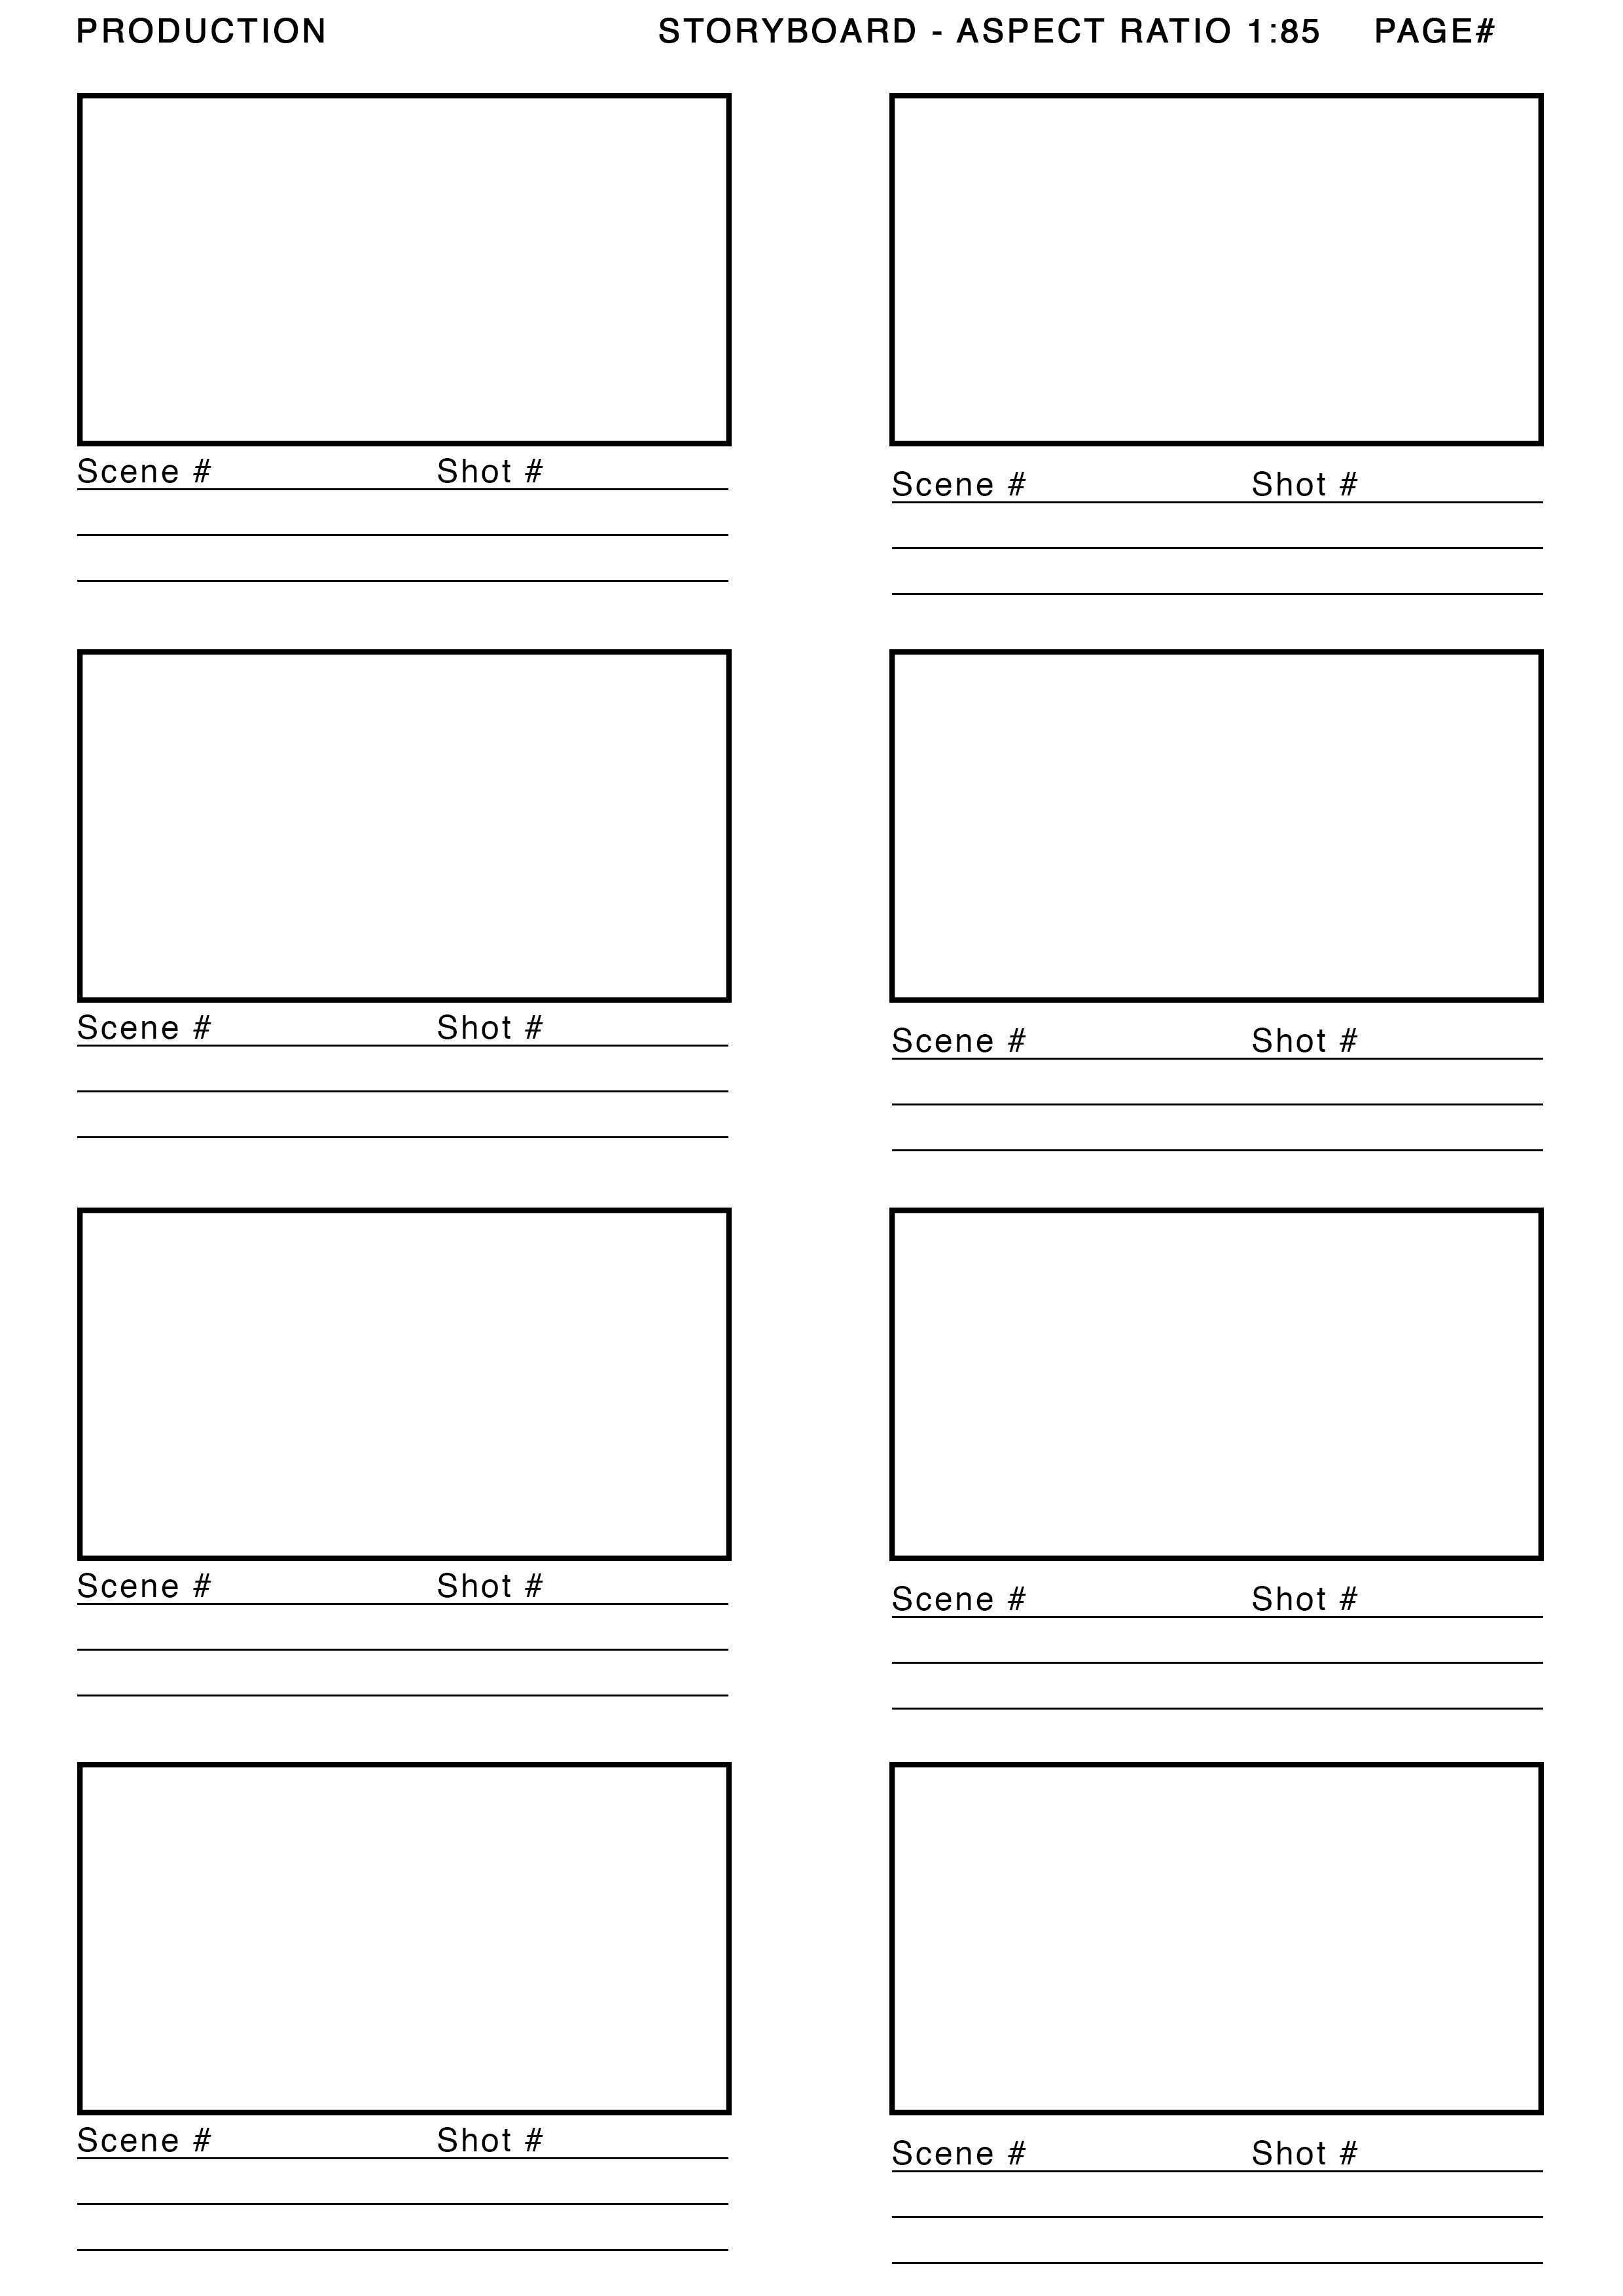 Pre Production I Downloaded A Storyboard Template From Http Alessandrougo Com To Enforce A Neat And Profes Storyboard Template Storyboard Storyboard Design